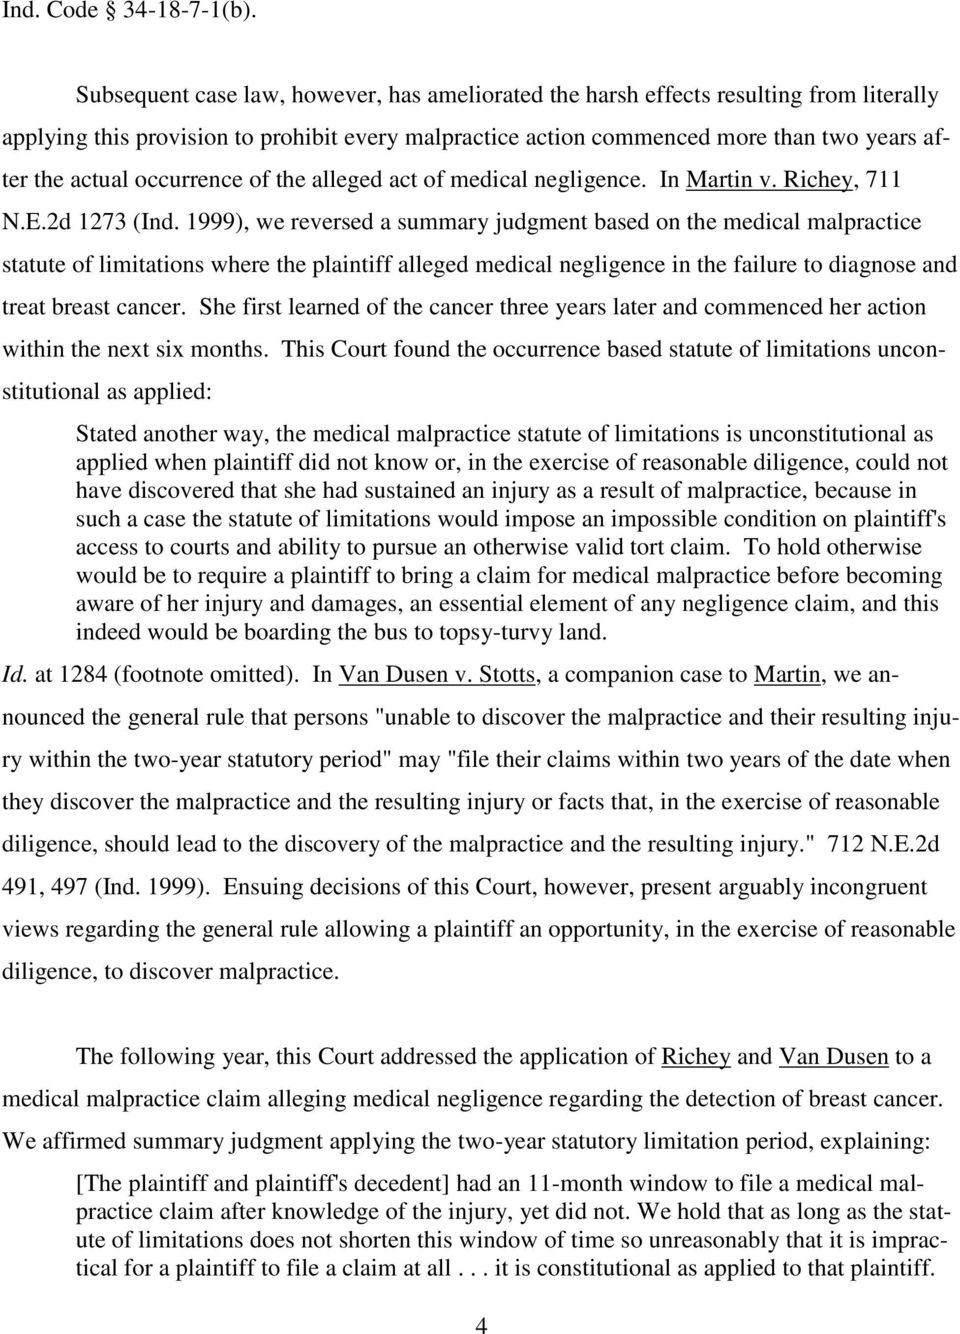 occurrence of the alleged act of medical negligence. In Martin v. Richey, 711 N.E.2d 1273 (Ind.